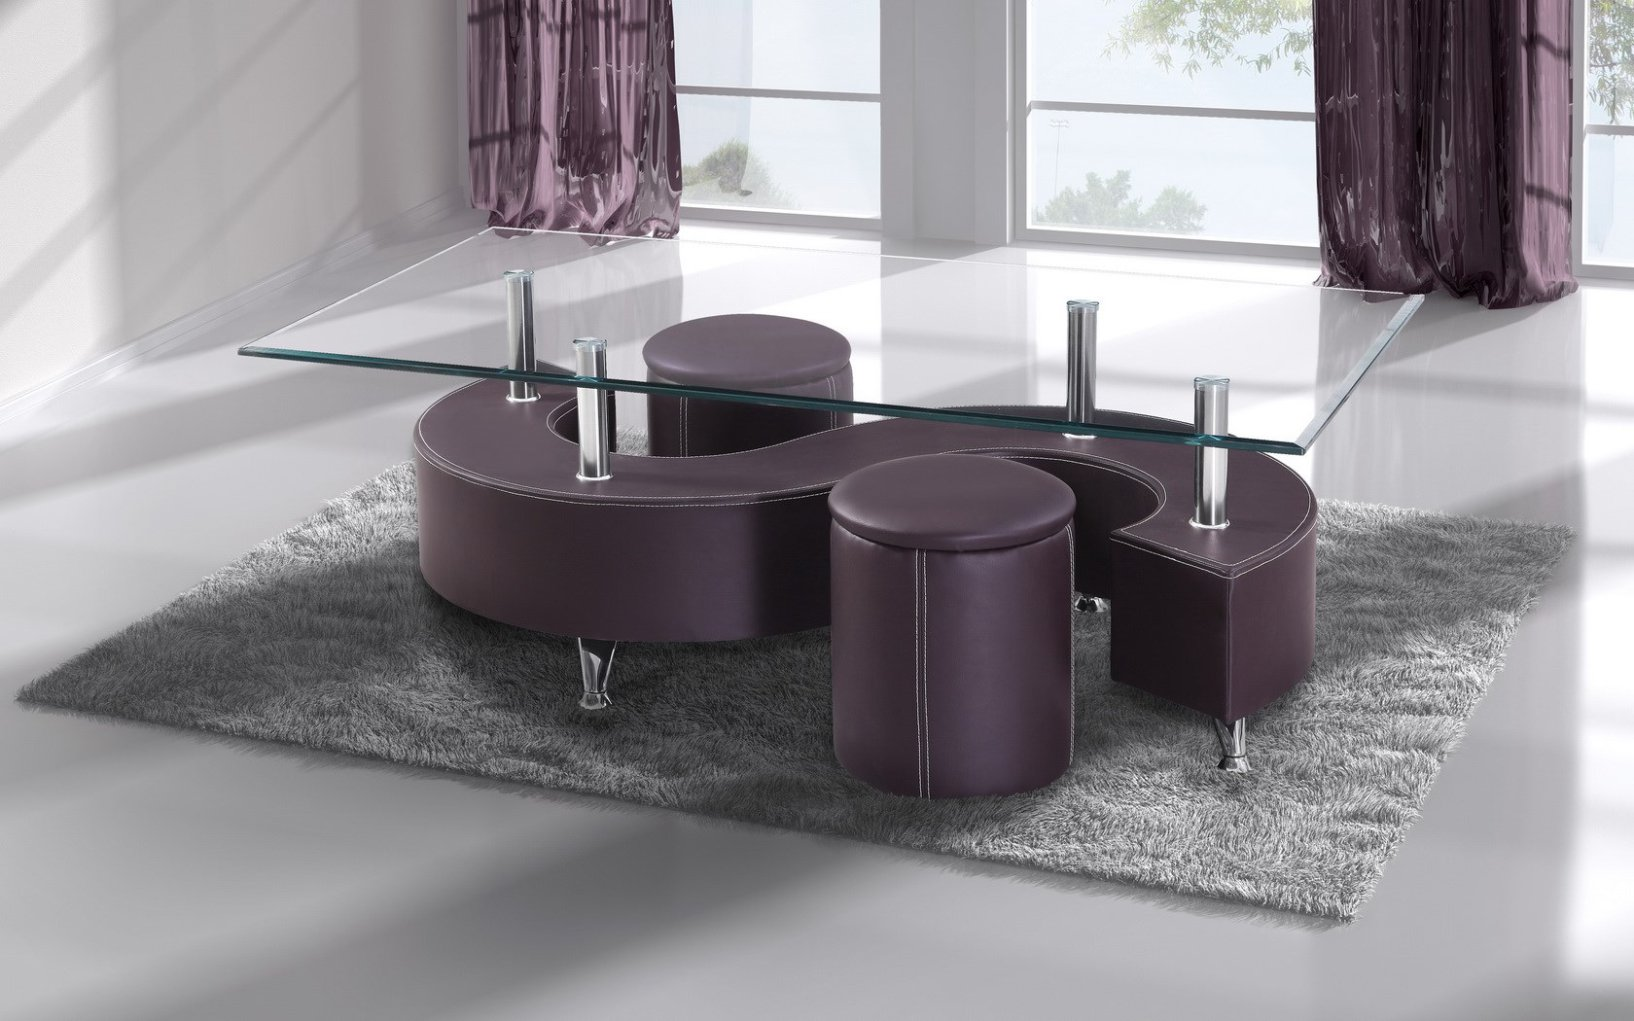 Table basse s lidos avec 2 poufs decor wenge for Table basse s avec pouf